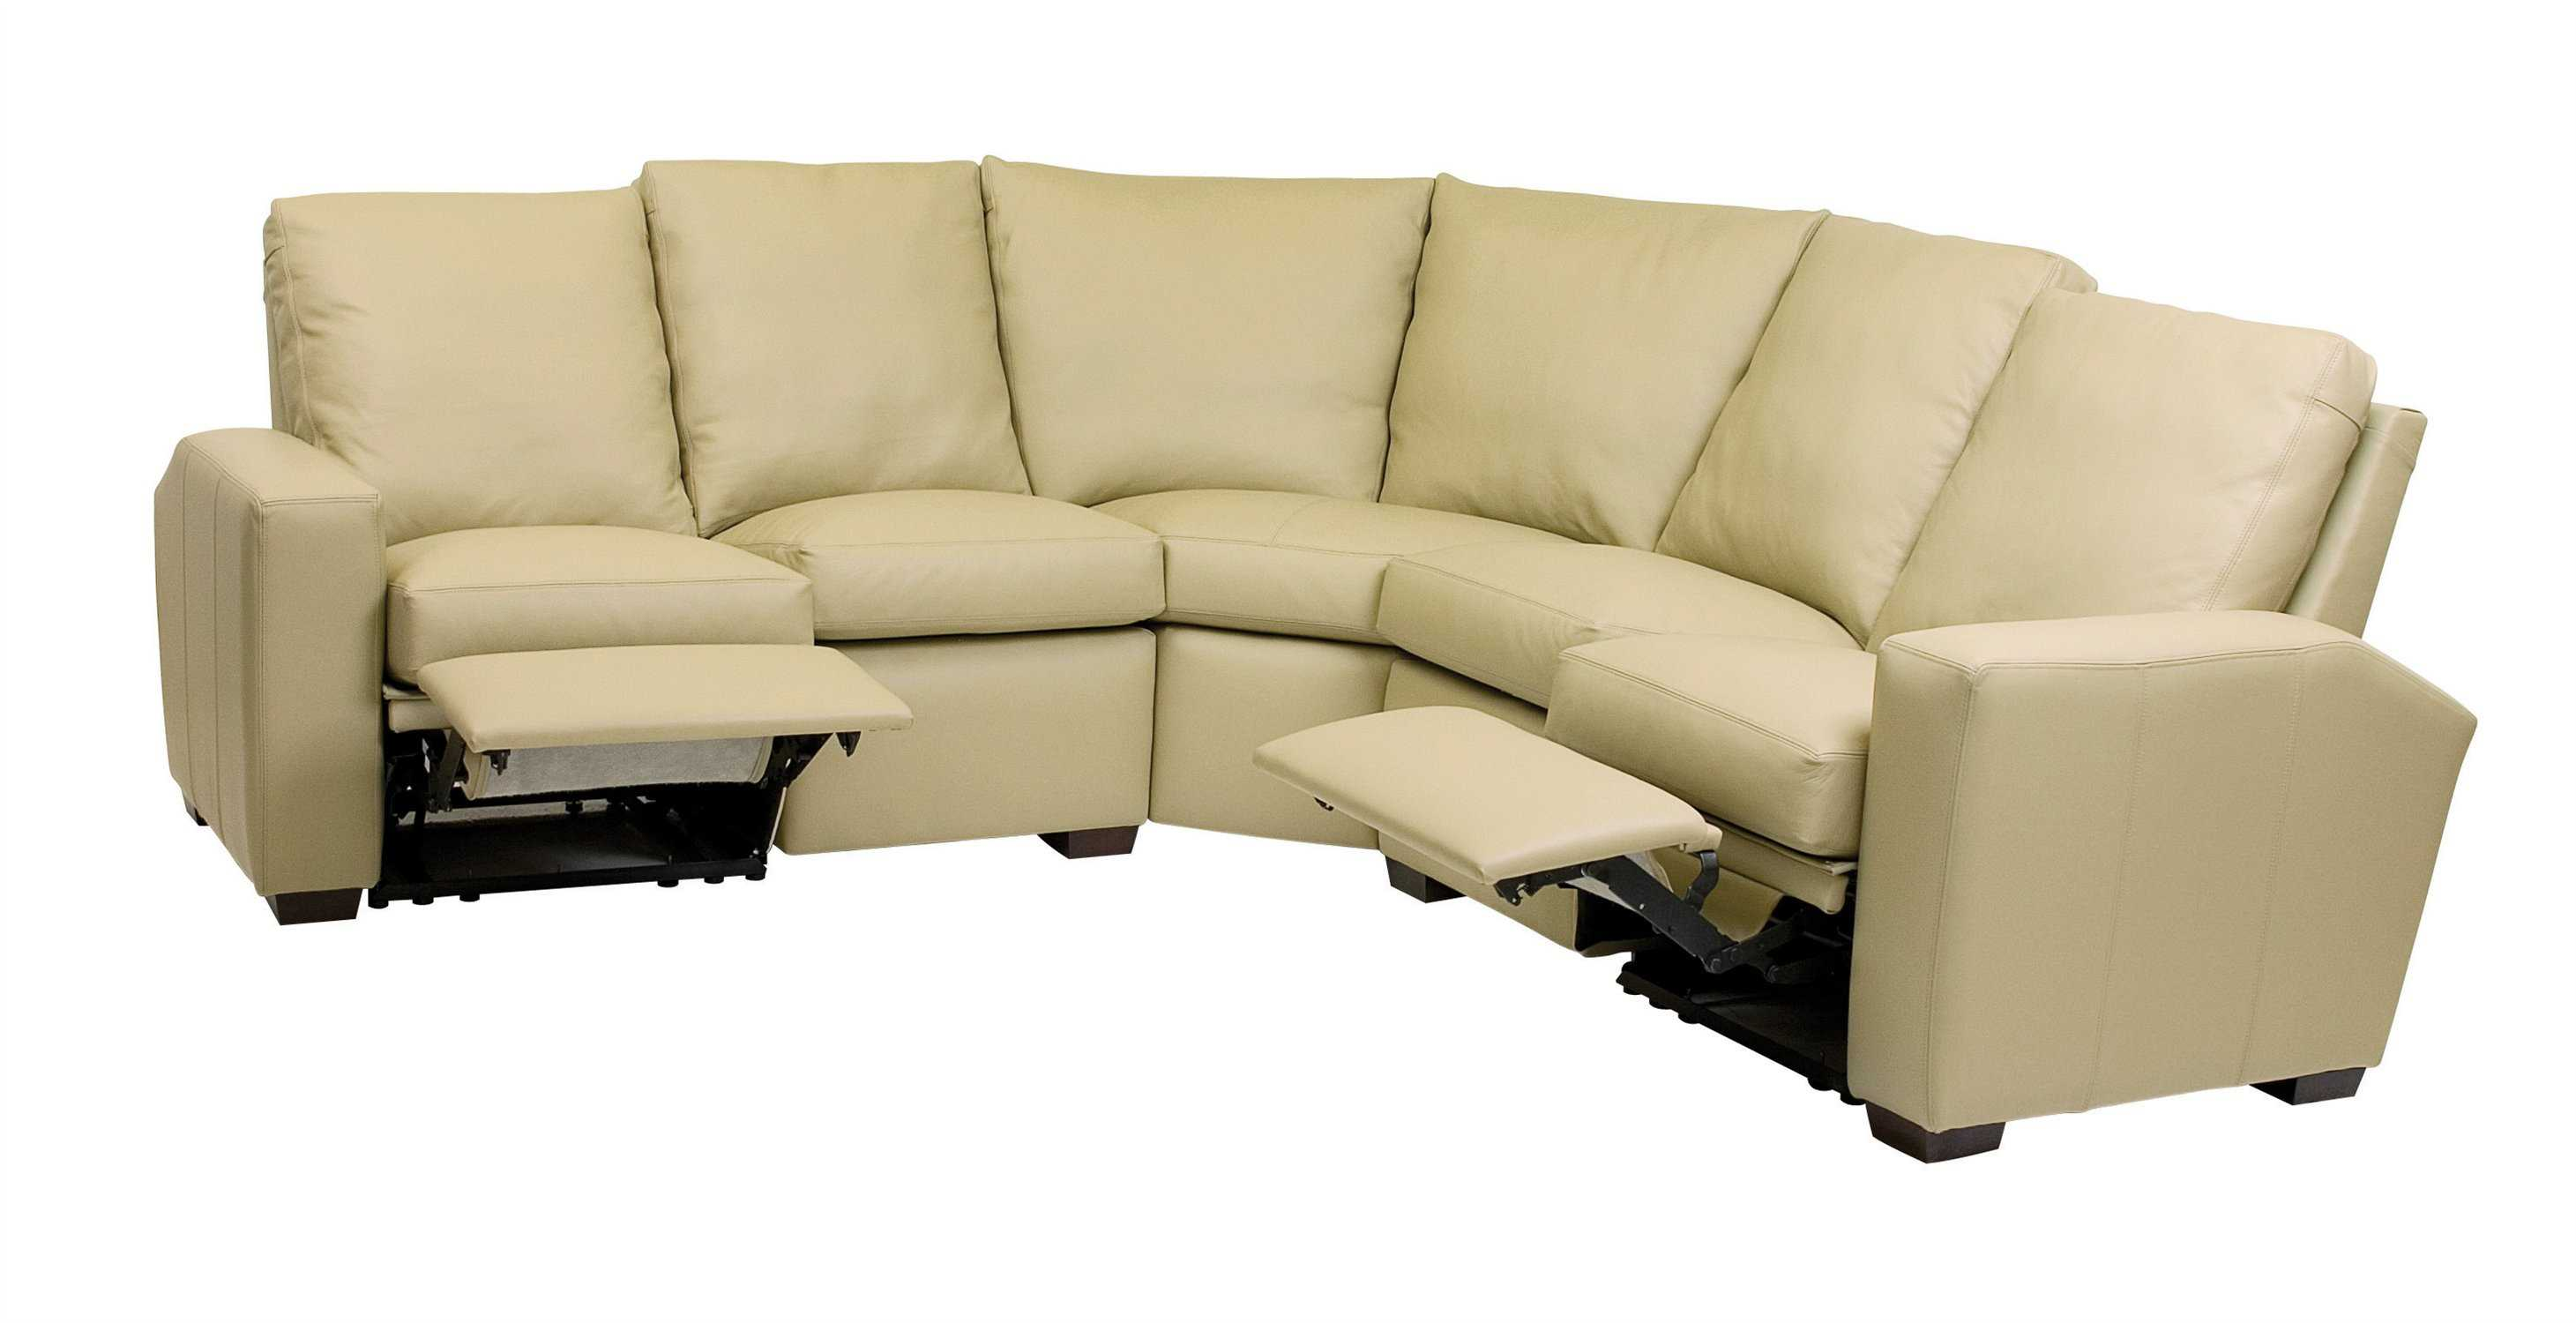 Classic leather metro reclining sectional sofa cl34421 for Sectional sofas with 4 recliners